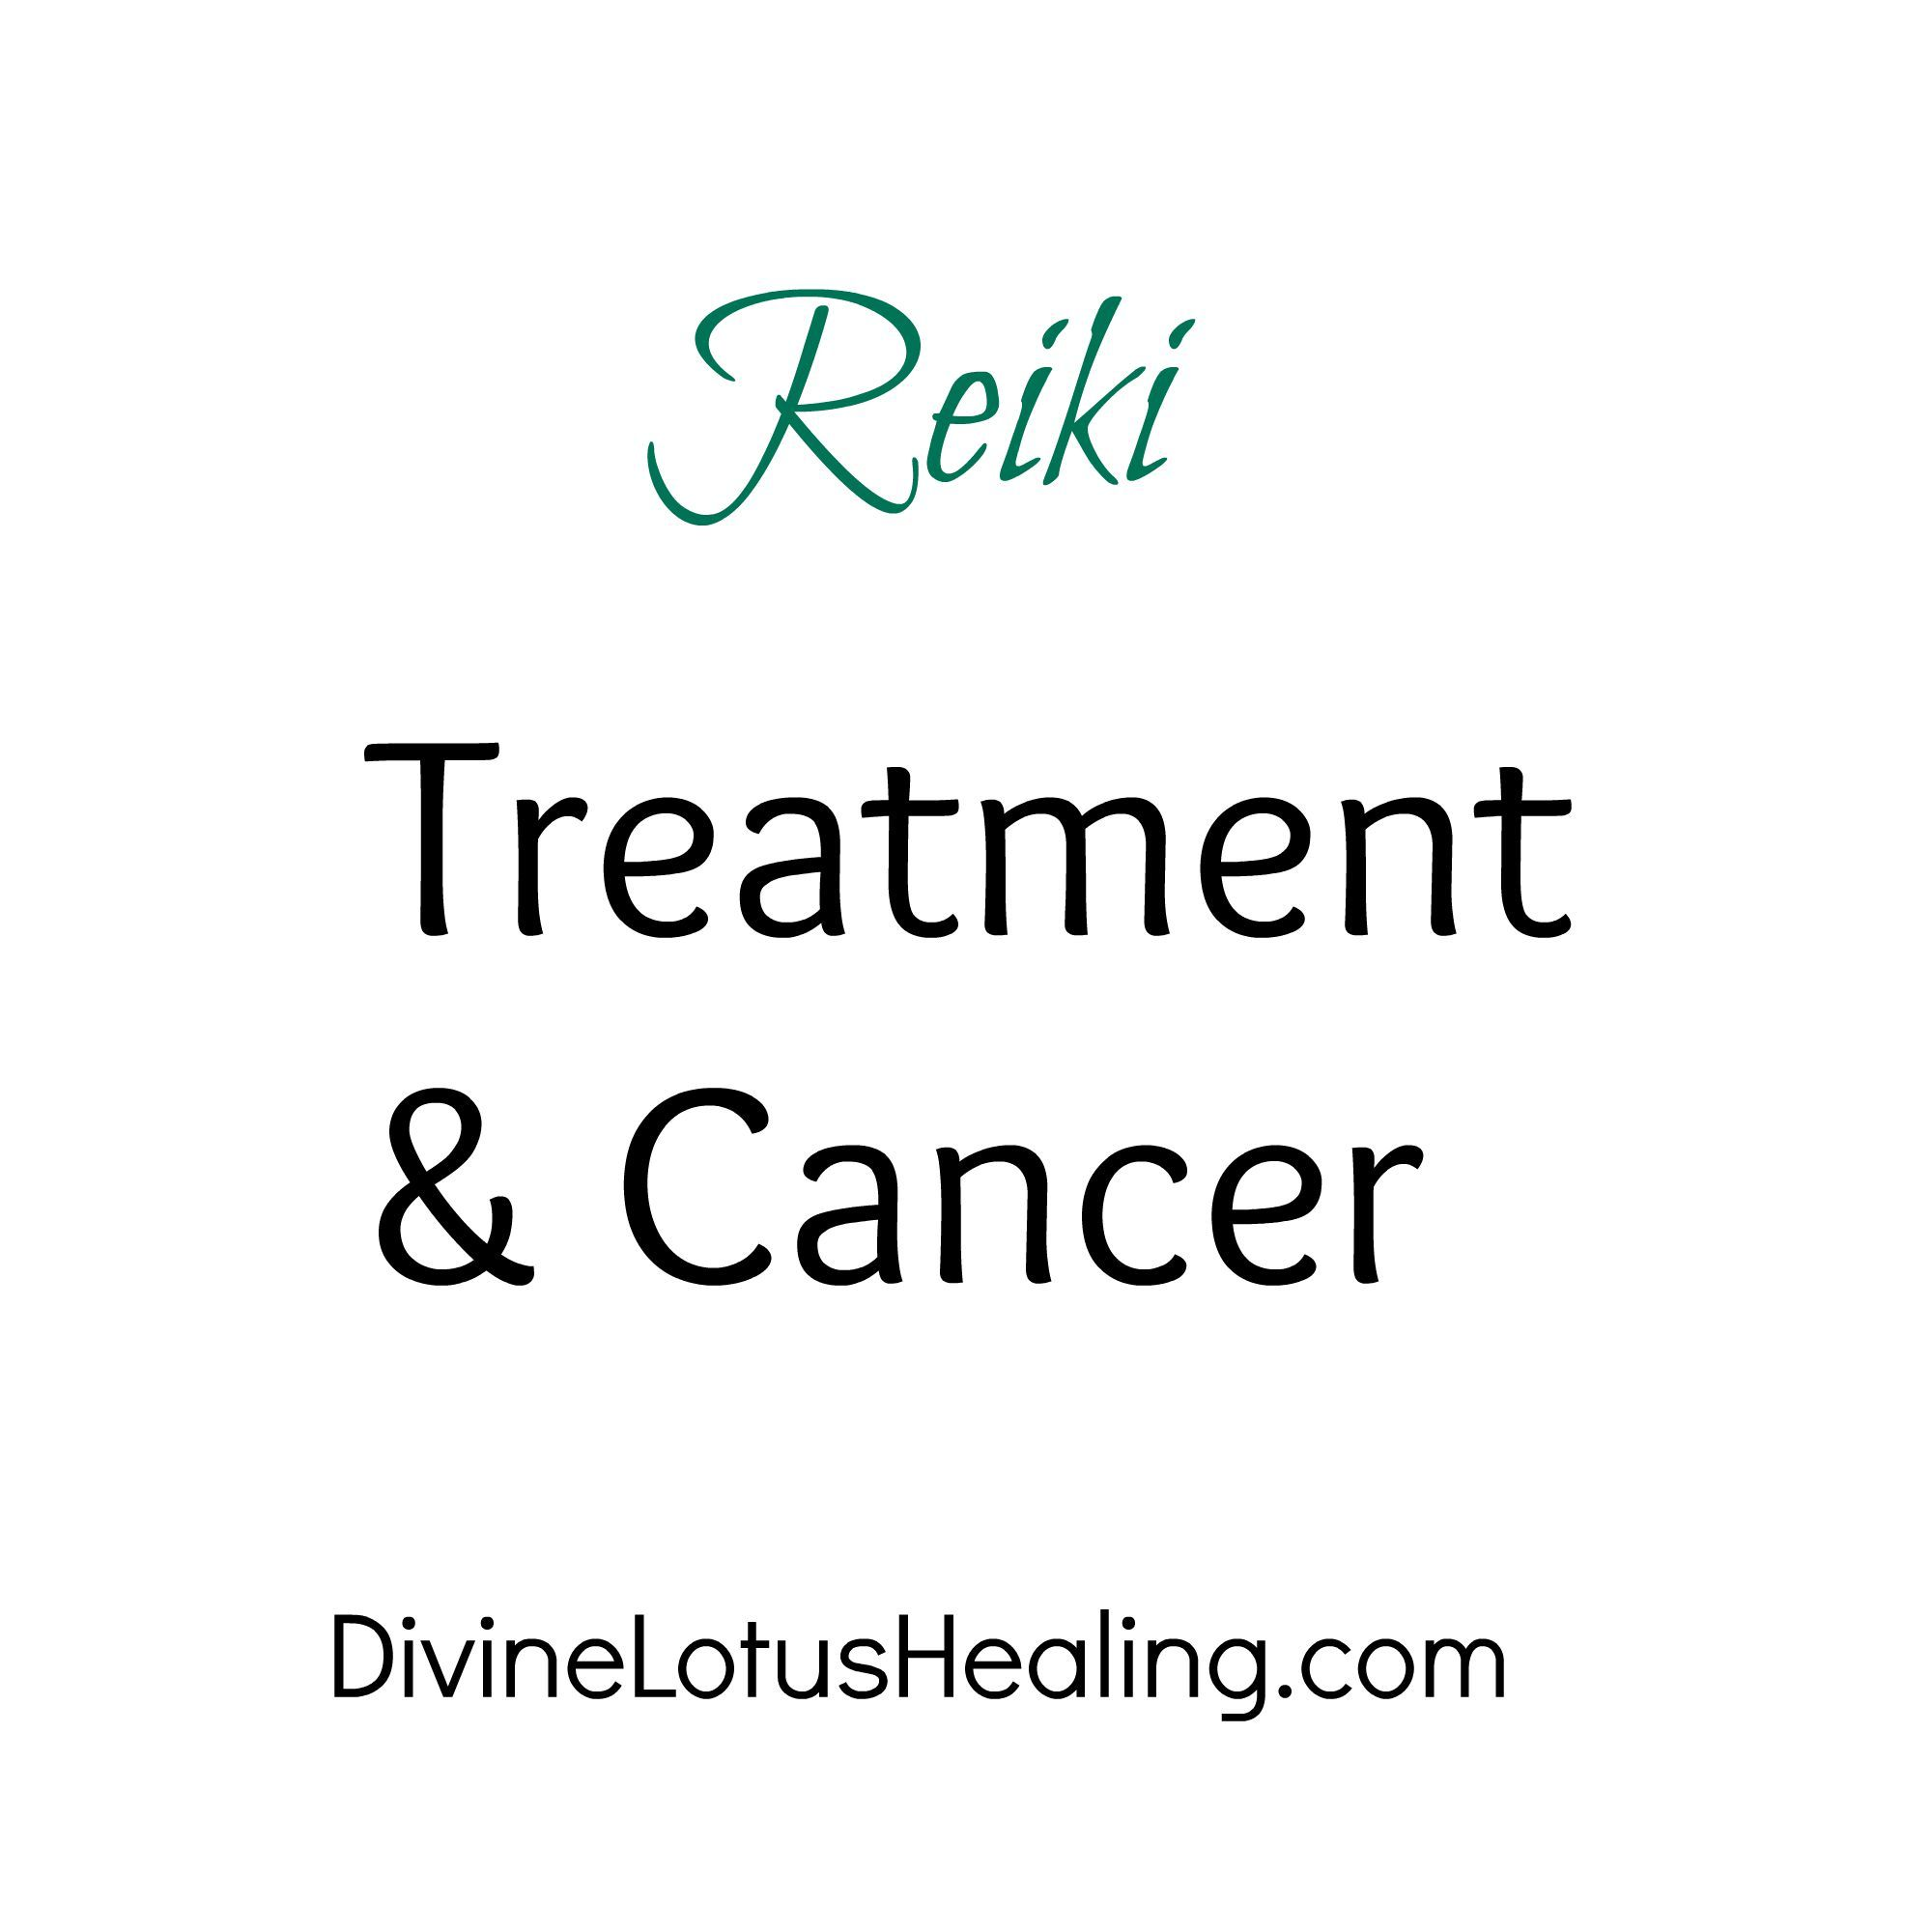 Divine lotus healing reiki treatment and cancer reiki healing divine lotus healing reiki treatment and cancer biocorpaavc